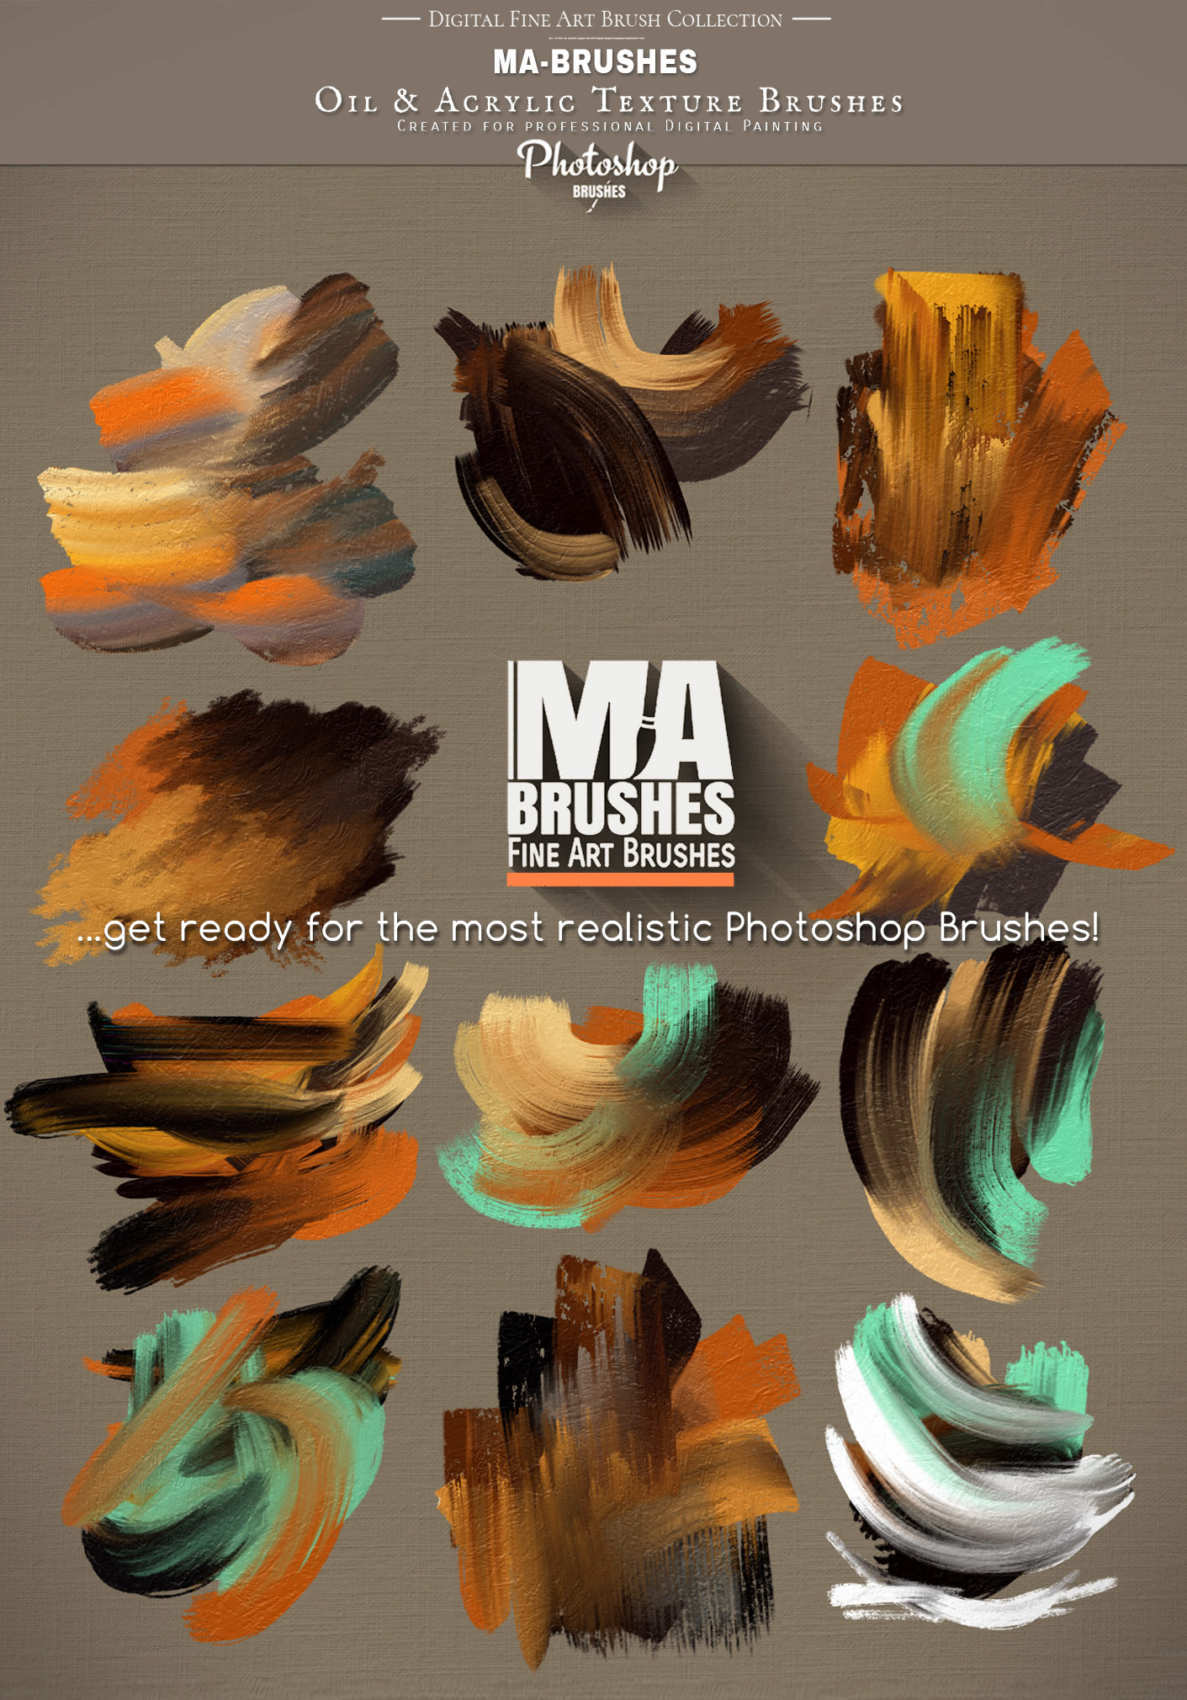 Photoshop Brushes for Painting with Oil Texture - 416 Realistic